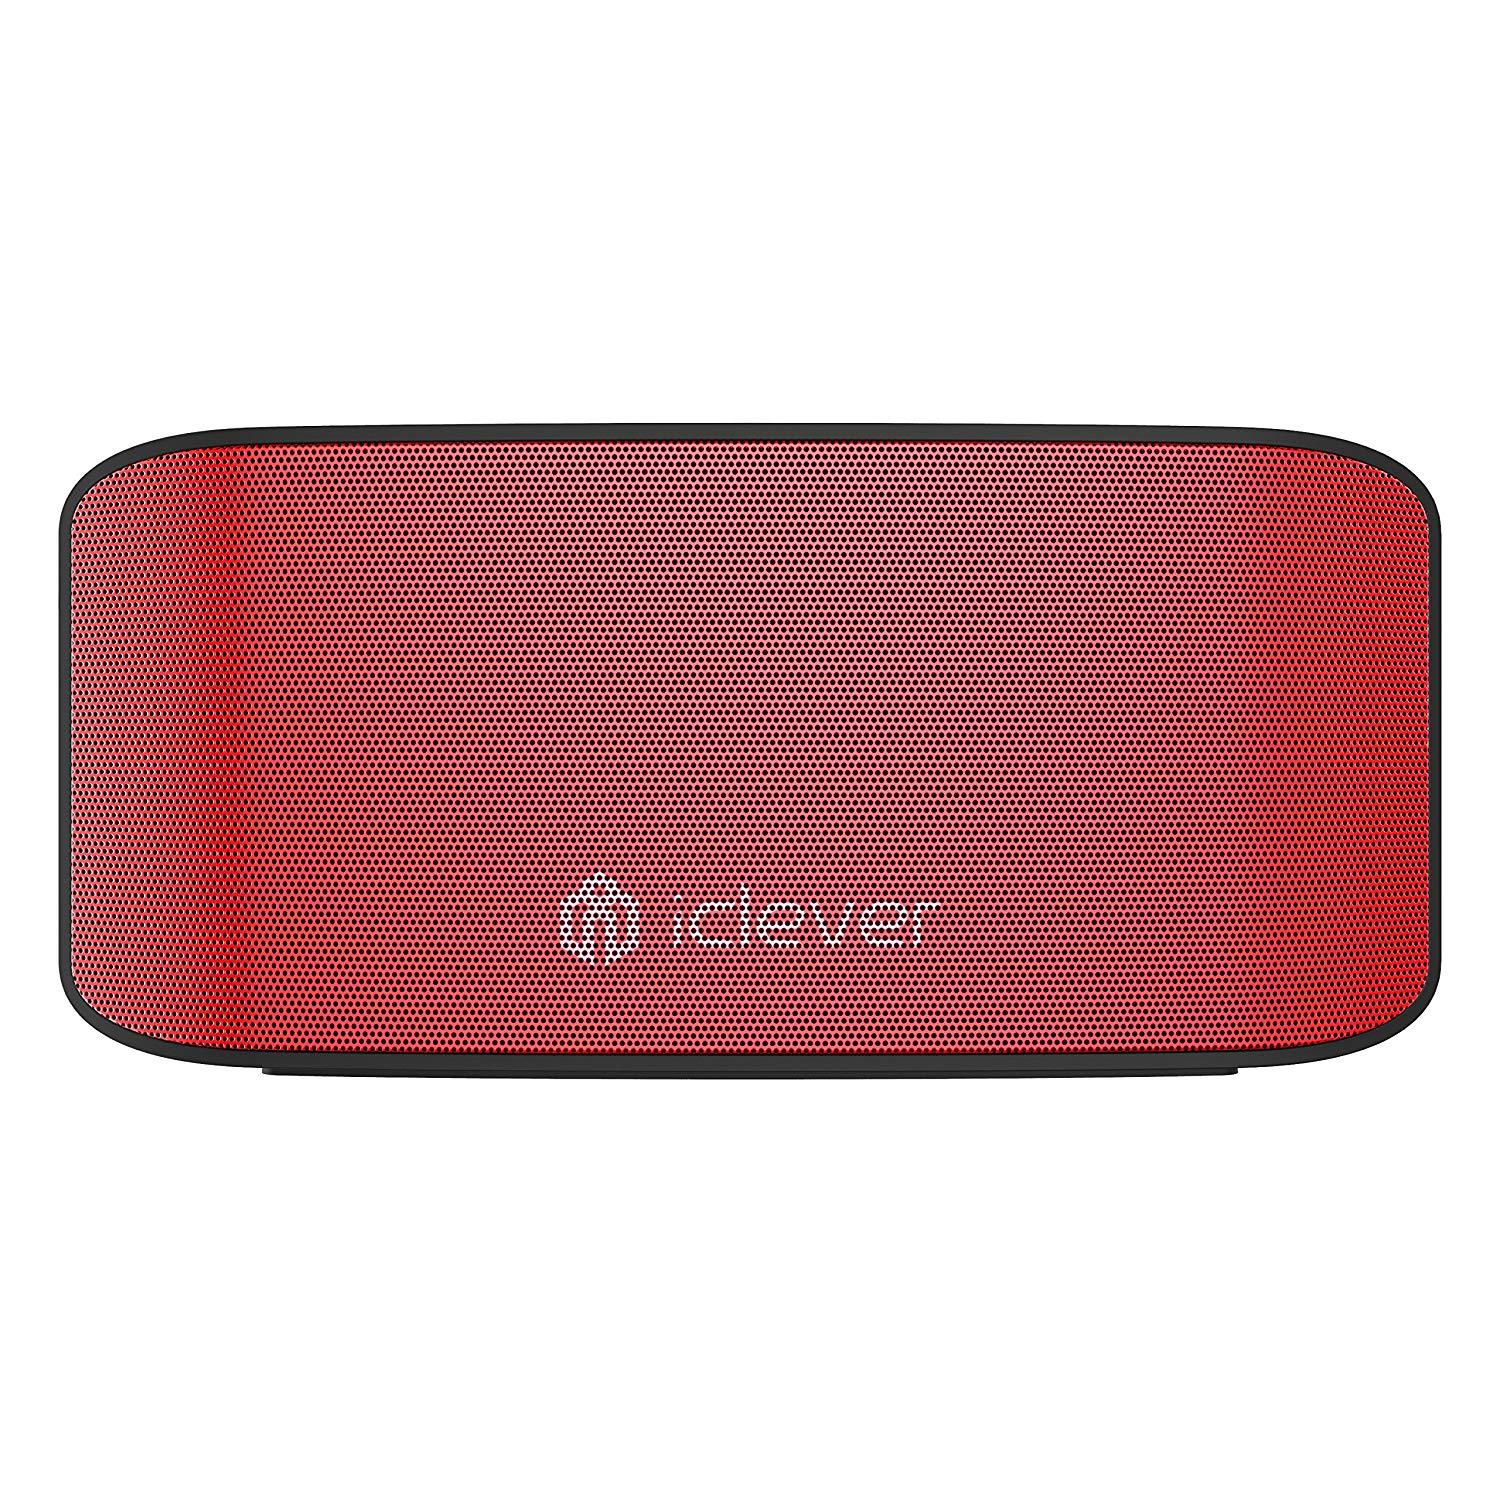 50% off Bluetooth Speakers, iClever Mini Portable Travel Speaker